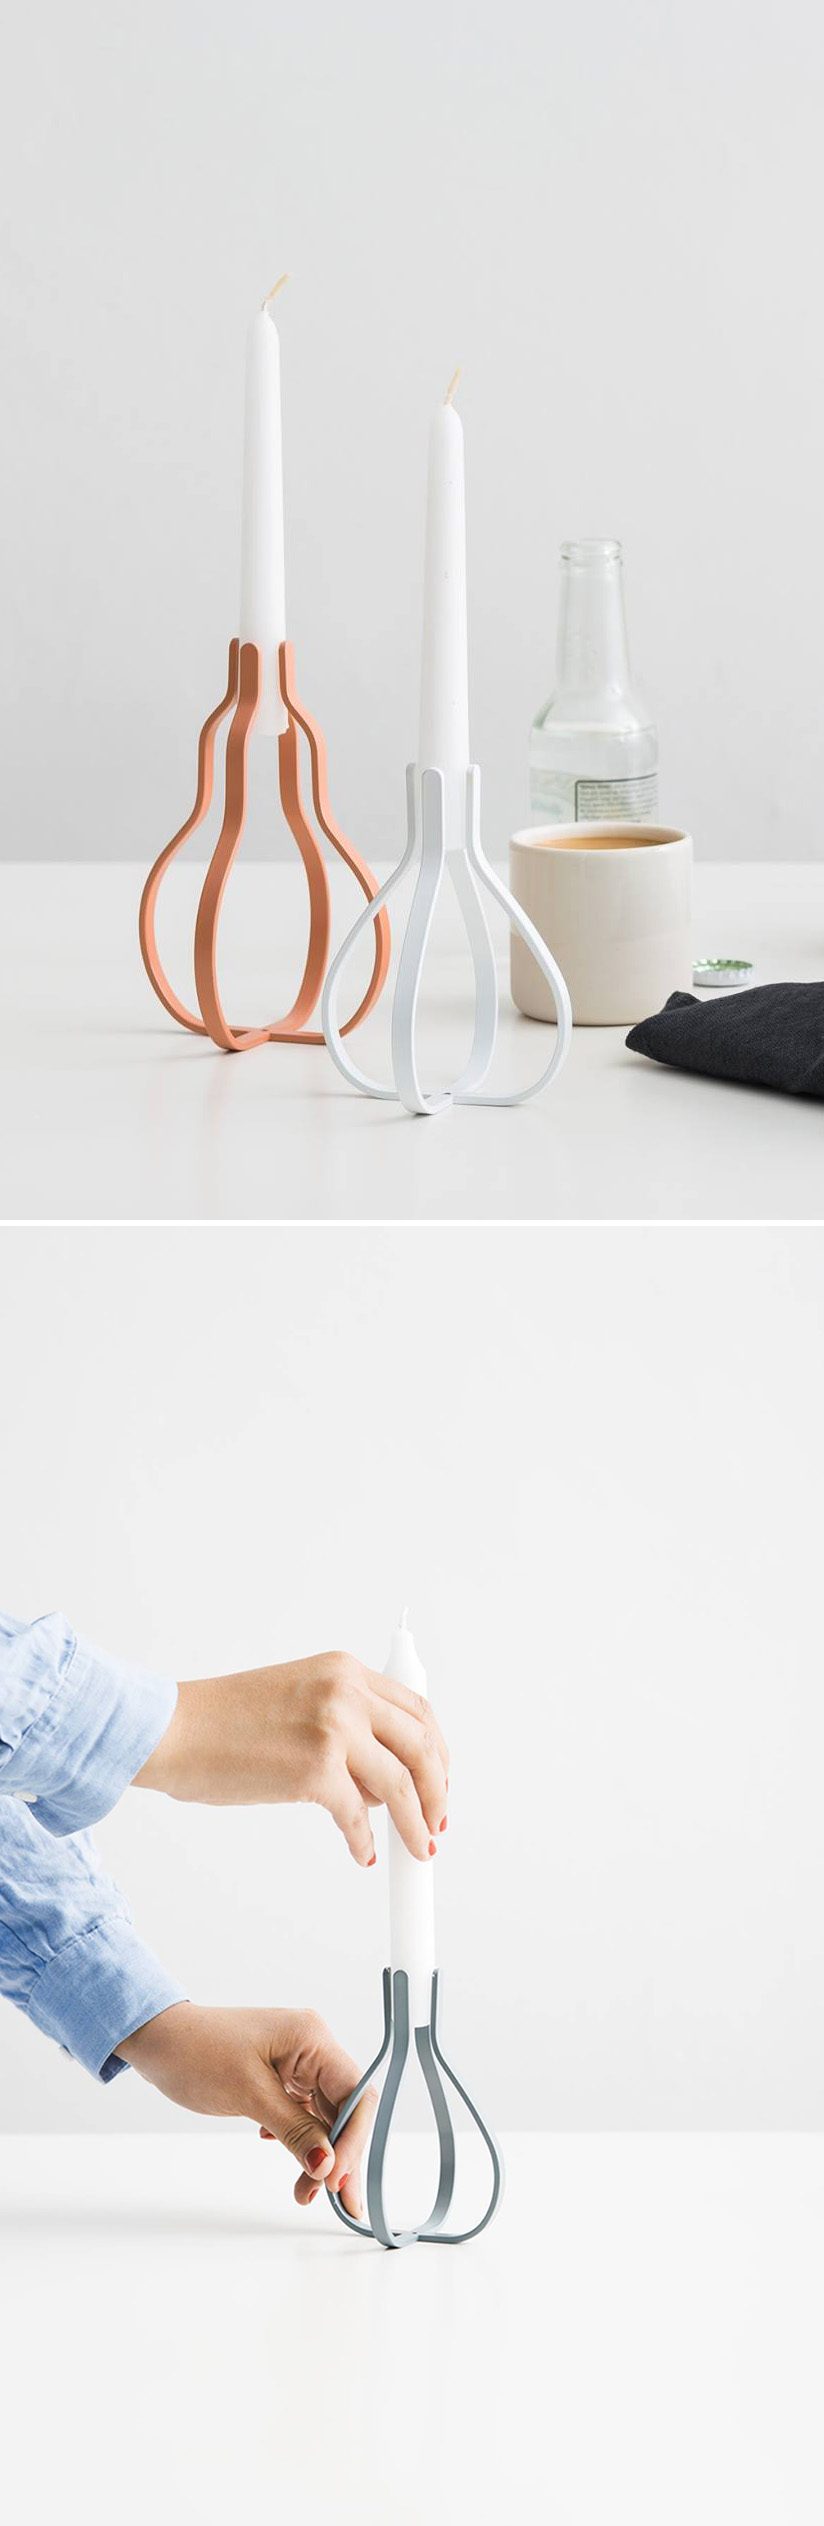 """Designed by Nendo, the Clip candle holder fulfils the Japanese firm's promise of providing the customer what they call """"a little '!' moment"""". Its fruit-inspired form is made from thin, painted steel with enough give to allow it to adapt to any candle diameter up to 20 mm. This means not only a greater choice of candles, but that the Clip itself takes on a slightly different shape depending on the size of candle you use. 